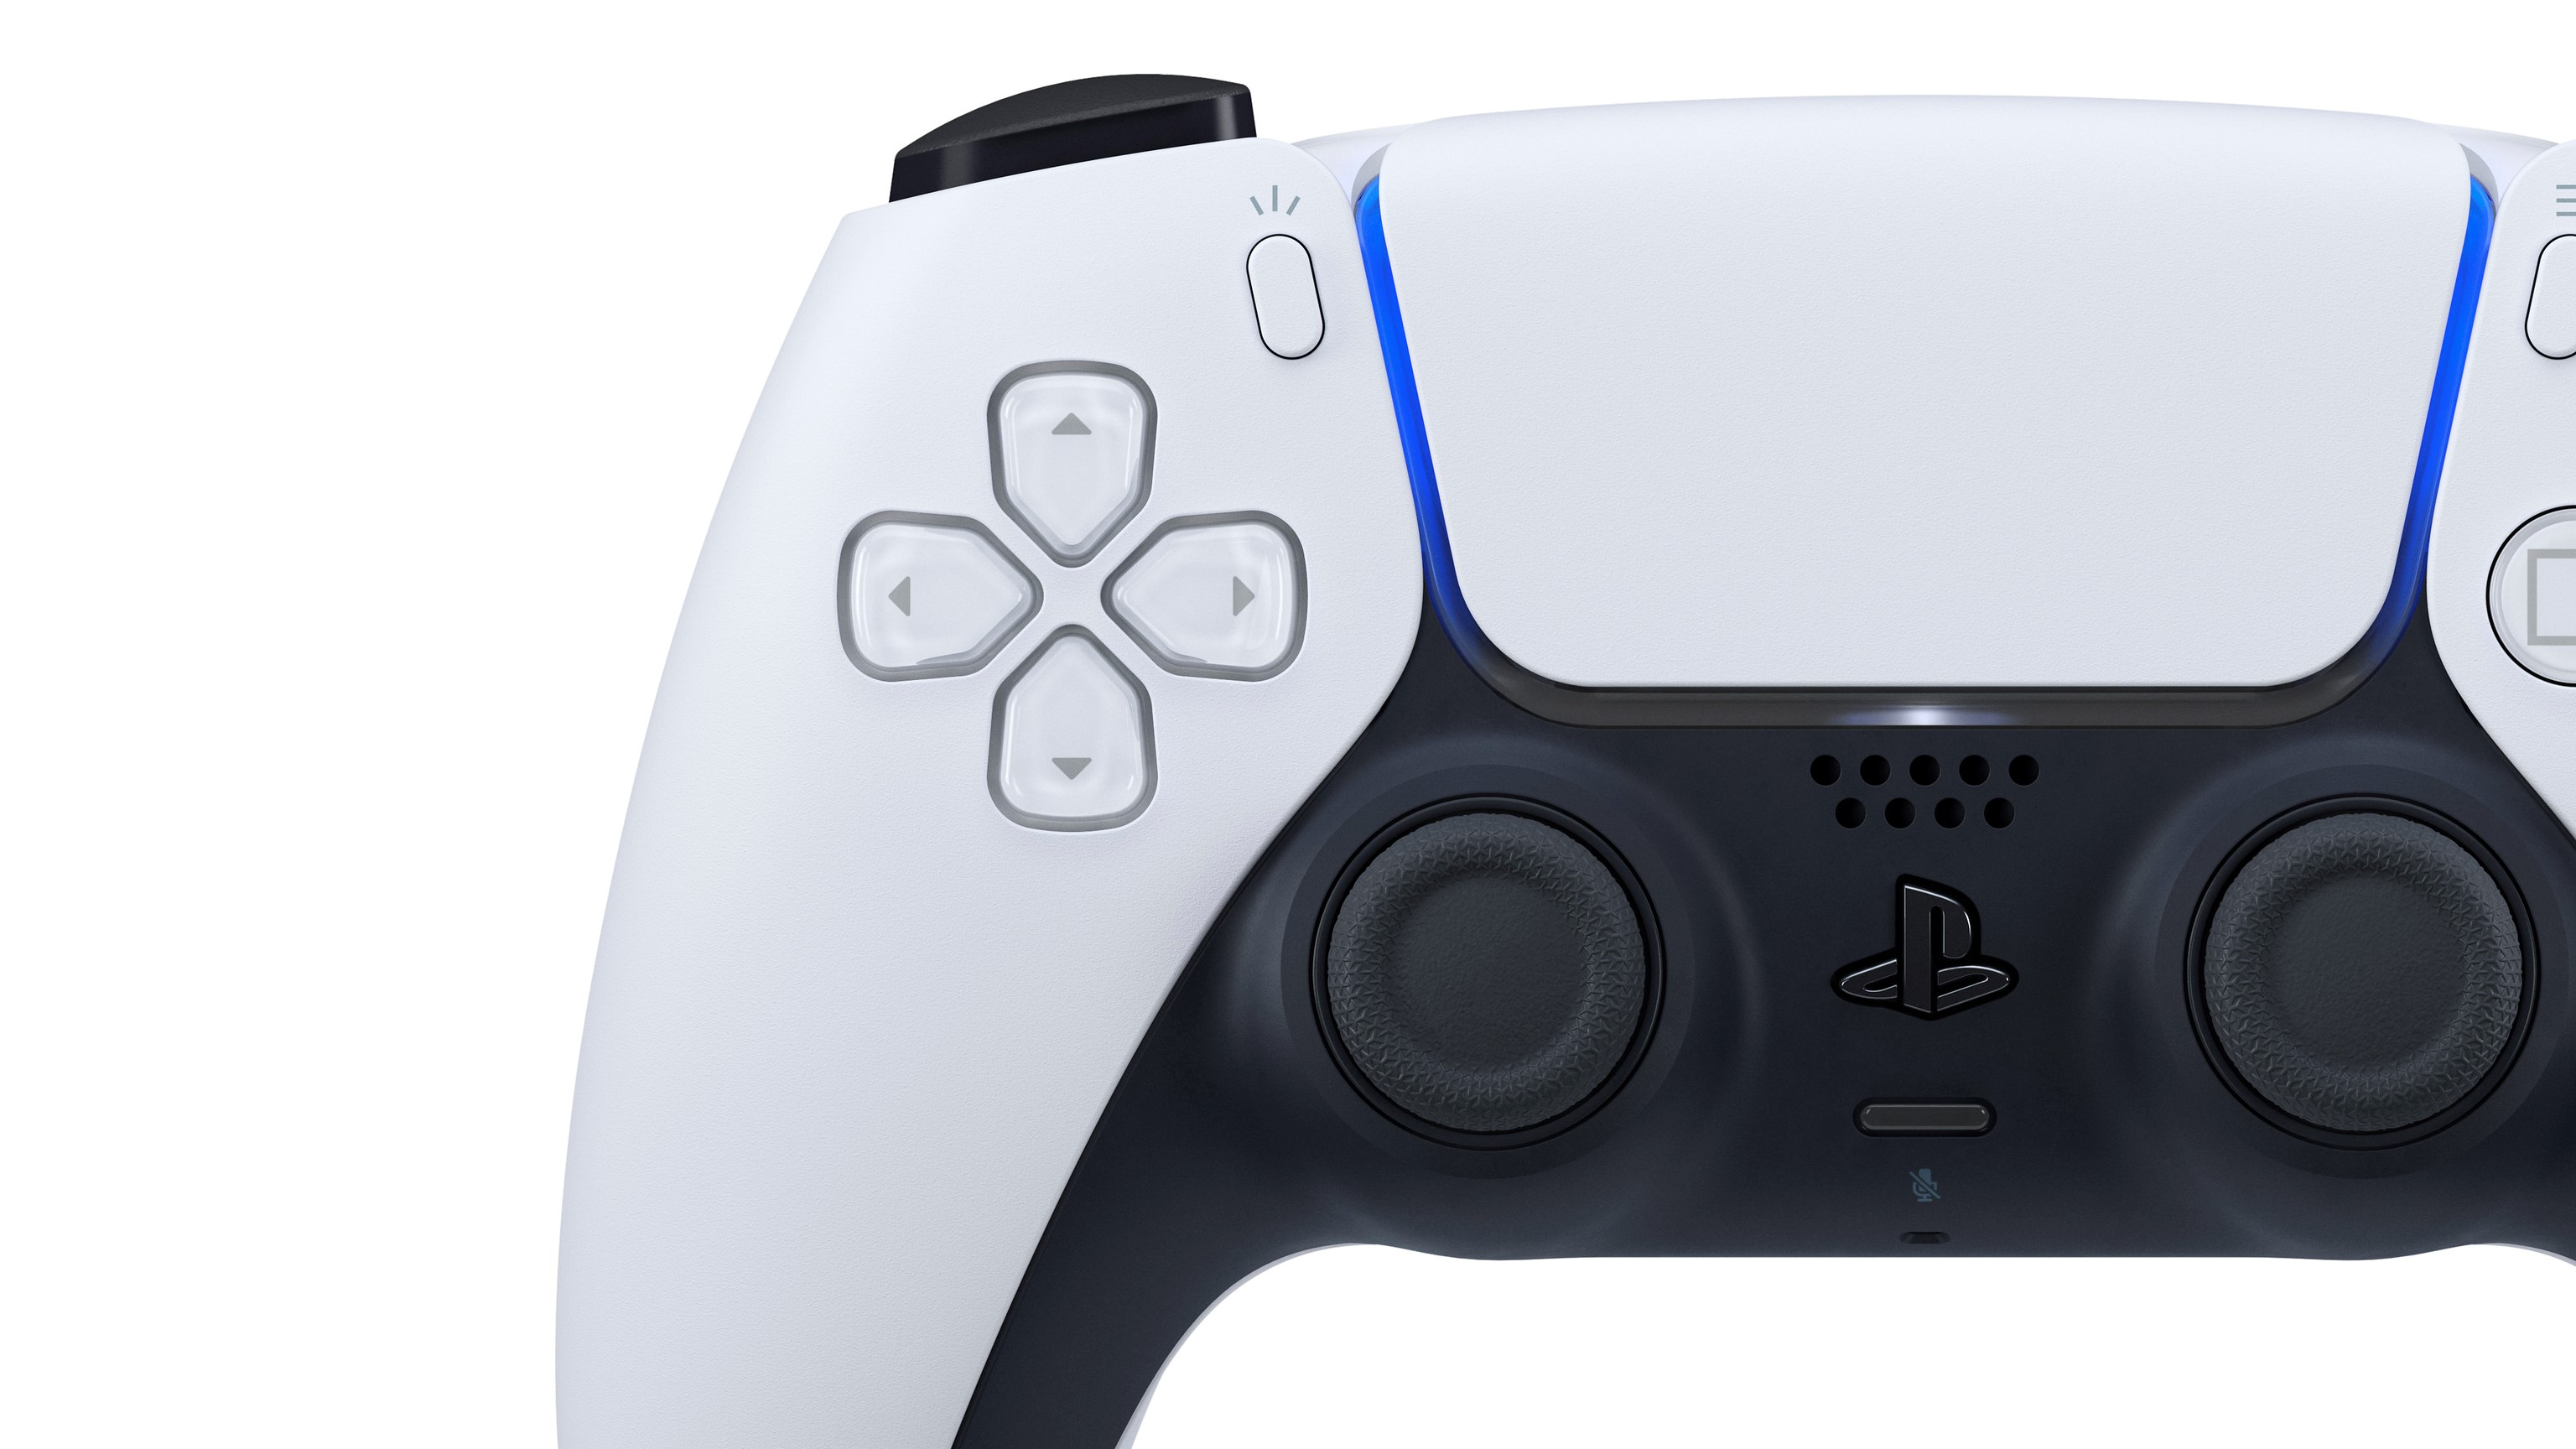 Meet the PS5 DualSense controller